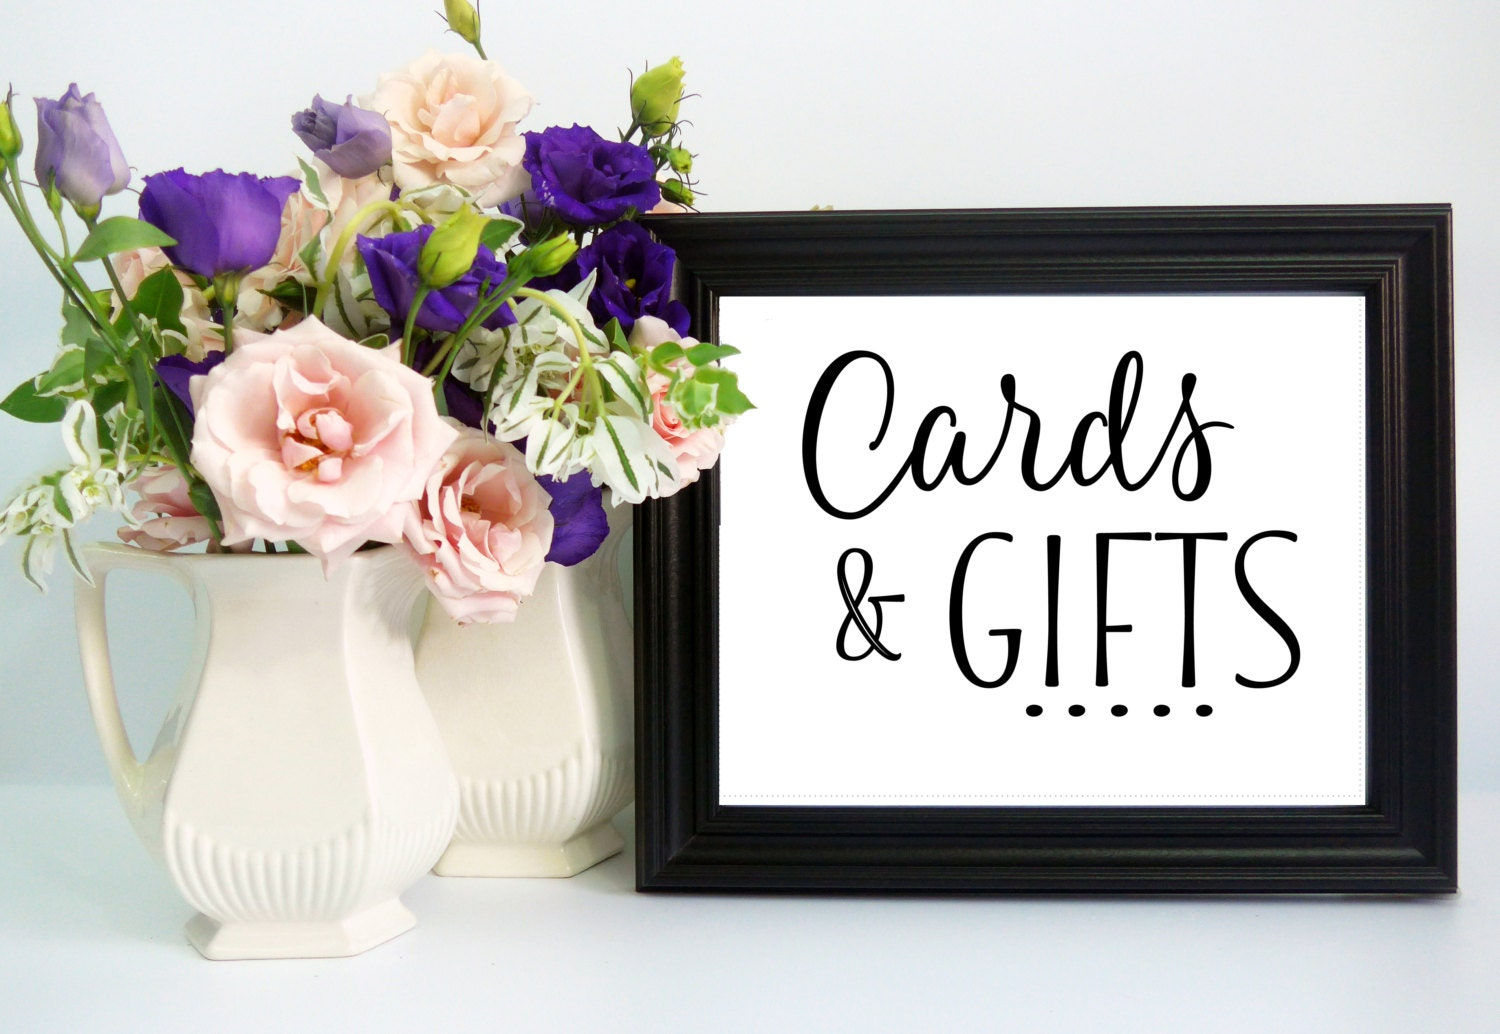 Wedding Gift Table Sign Wording : Wedding Card & Gift Table Sign Trendy Style DIY